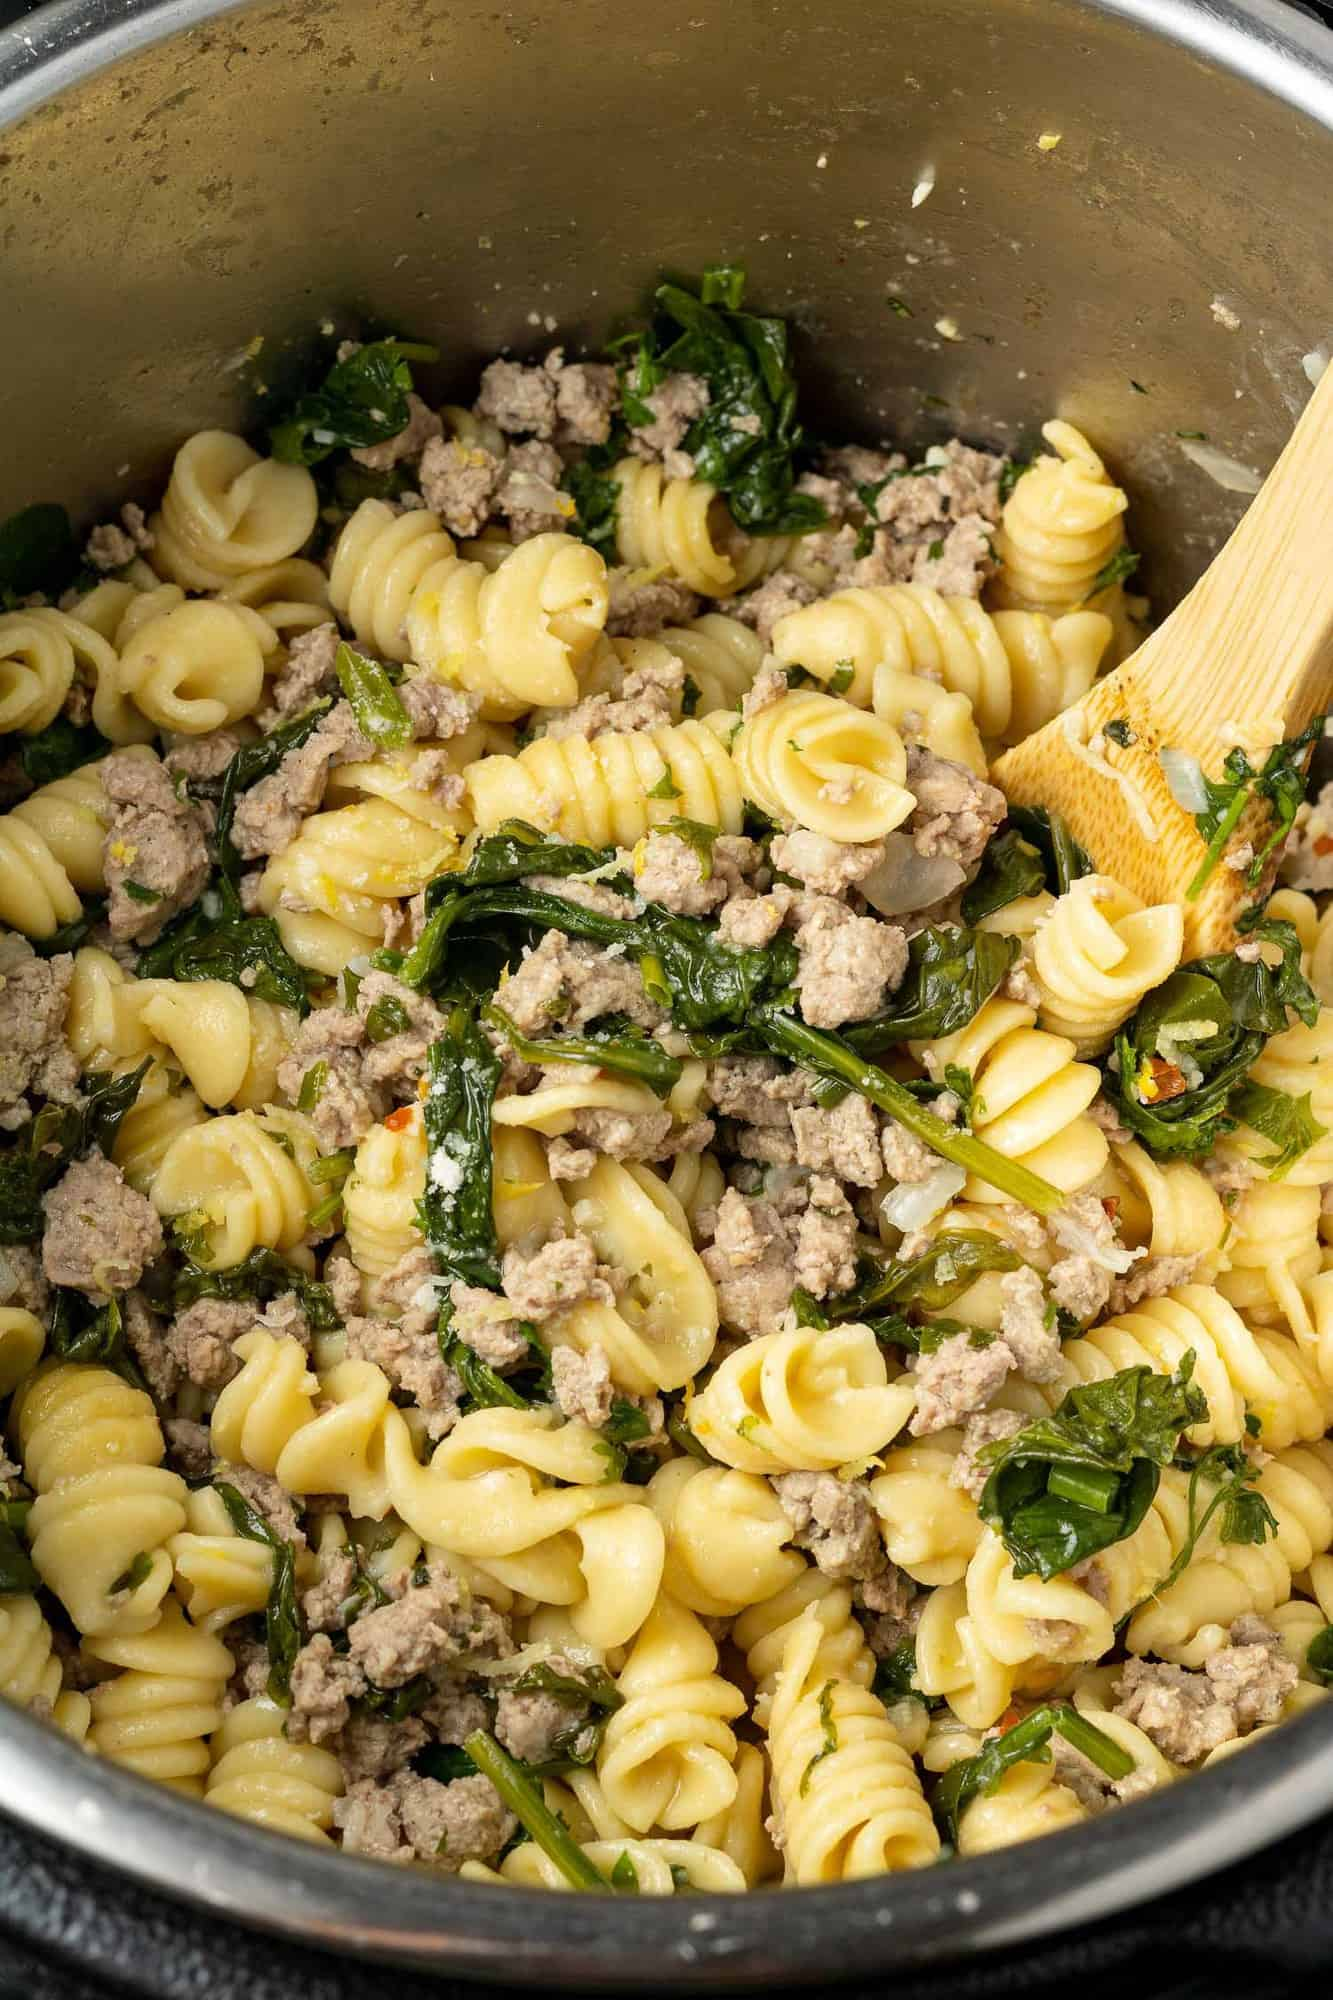 Instant pot filled with pasta, spinach, ground chicken, and a wooden spoon.